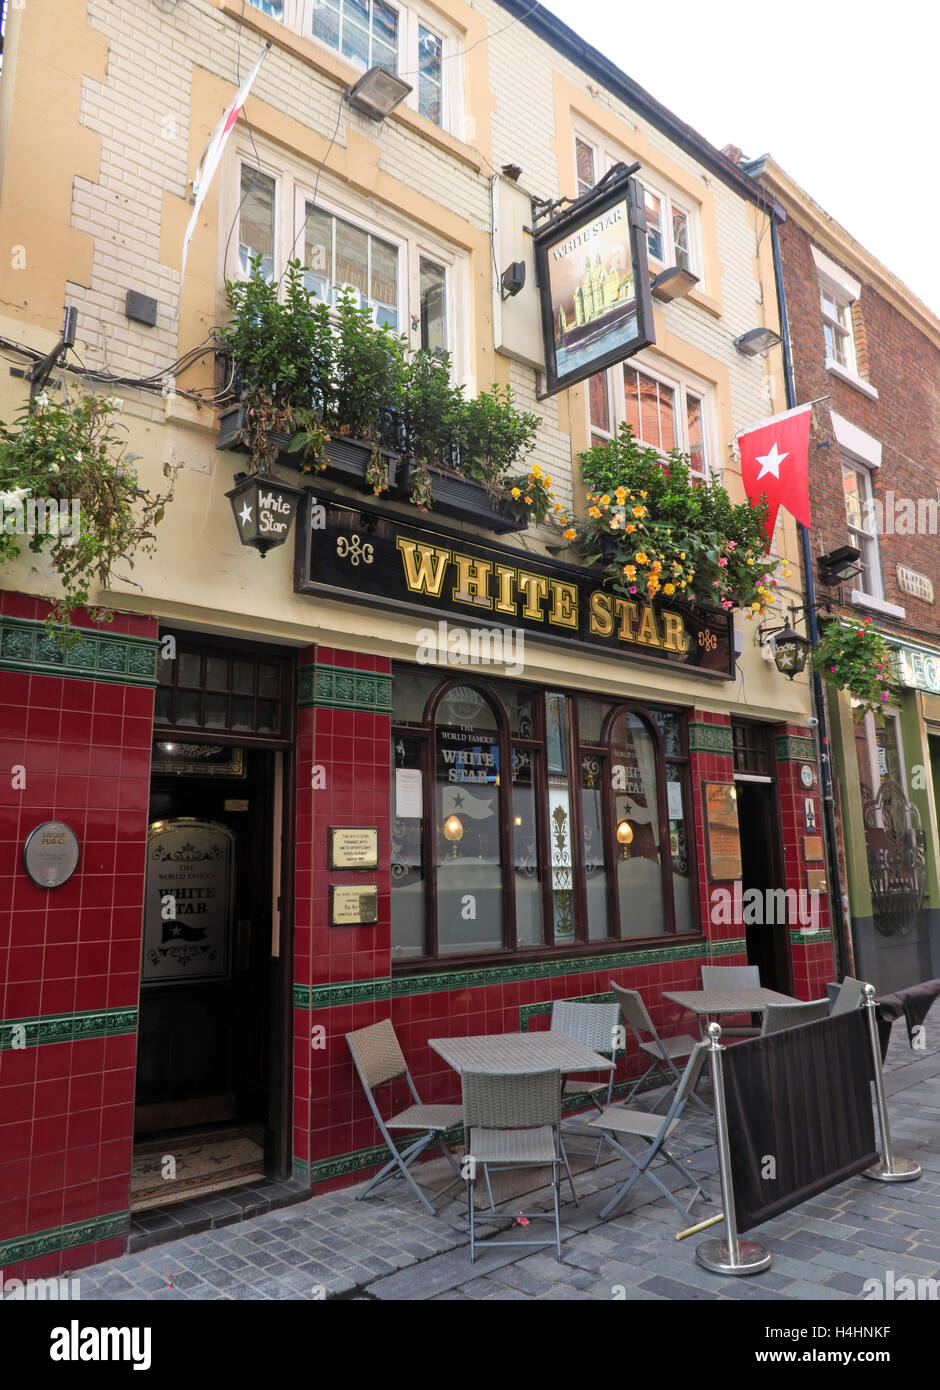 pubs,bar,bars,famous,Cavern,walks,walk,drinking,boozer,beer,beers,ale,Liverpool,Beatle,Victorian,historic,shipping,company,line,CAMRA,Beatles,club,Quinns,Quinns2,Cavern Walks,city centre,White Star Line,White Star,Bob Wooler,Alan Williams,Liverpool Pubs,GoTonySmith,@HotpixUK,Tony,Smith,UK,GB,Great,Britain,United,Kingdom,English,British,England,Buy Pictures of,Buy Images Of,Images of,Stock Images,Tony Smith,United Kingdom,Great Britain,British Isles